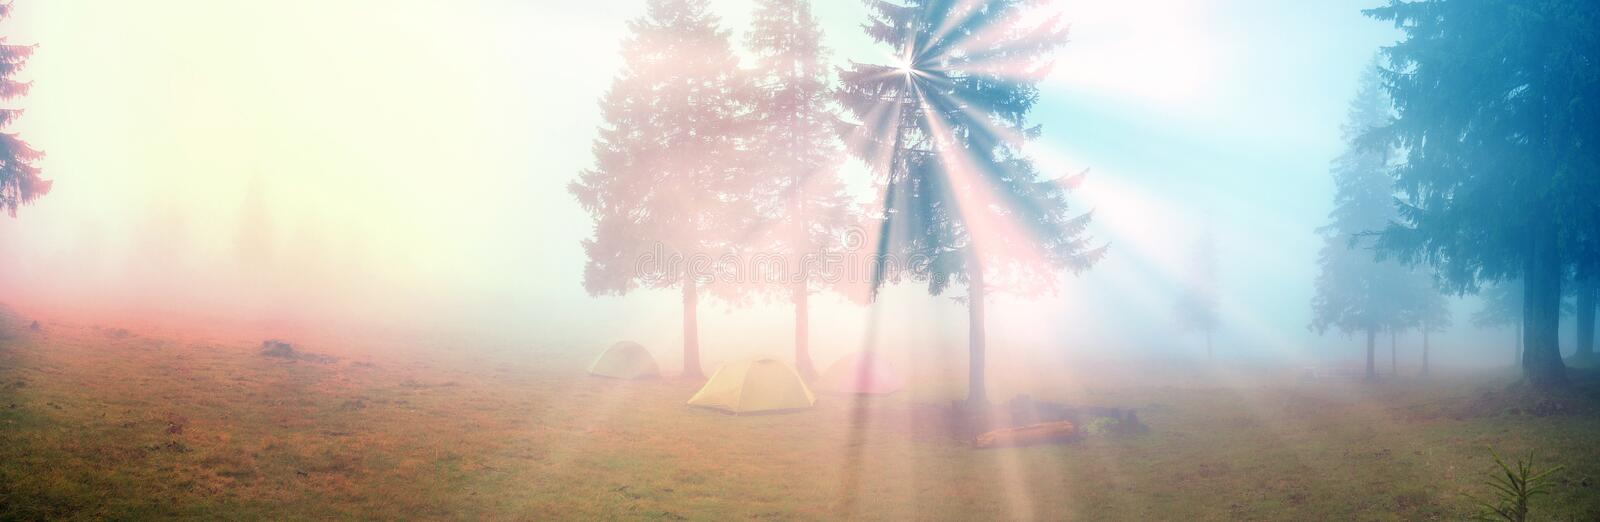 Tent in the fog royalty free stock image